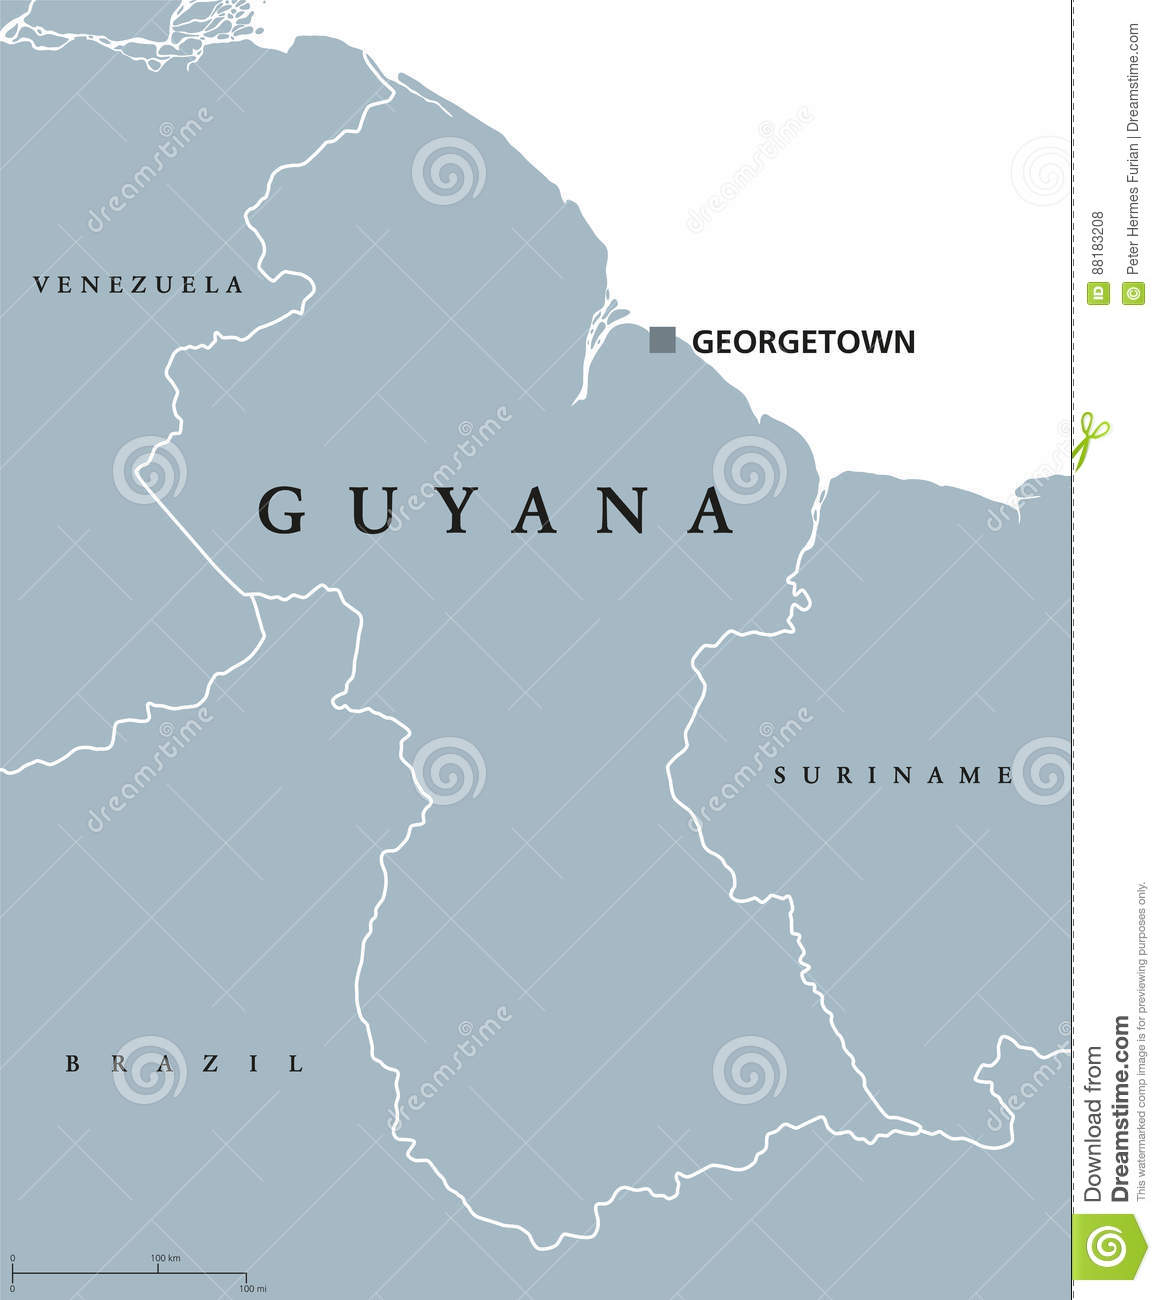 Guyana political map stock vector. Illustration of gray ... on labeled map of pennsylvania, labeled map of united kingdom, labeled map of the u.s, labeled map of tobago, labeled map of nigeria, labeled map of the british isles, labeled map of bodies of water, labeled map of fiji islands, labeled map of switzerland, labeled map of trinidad, labeled map of northern europe, labeled map of the caribbean islands, labeled map of iran, labeled map of new caledonia, labeled map of amazon river, labeled map of indochina, labeled map of western united states, labeled map of syria, labeled map of ussr, labeled map of iraq,